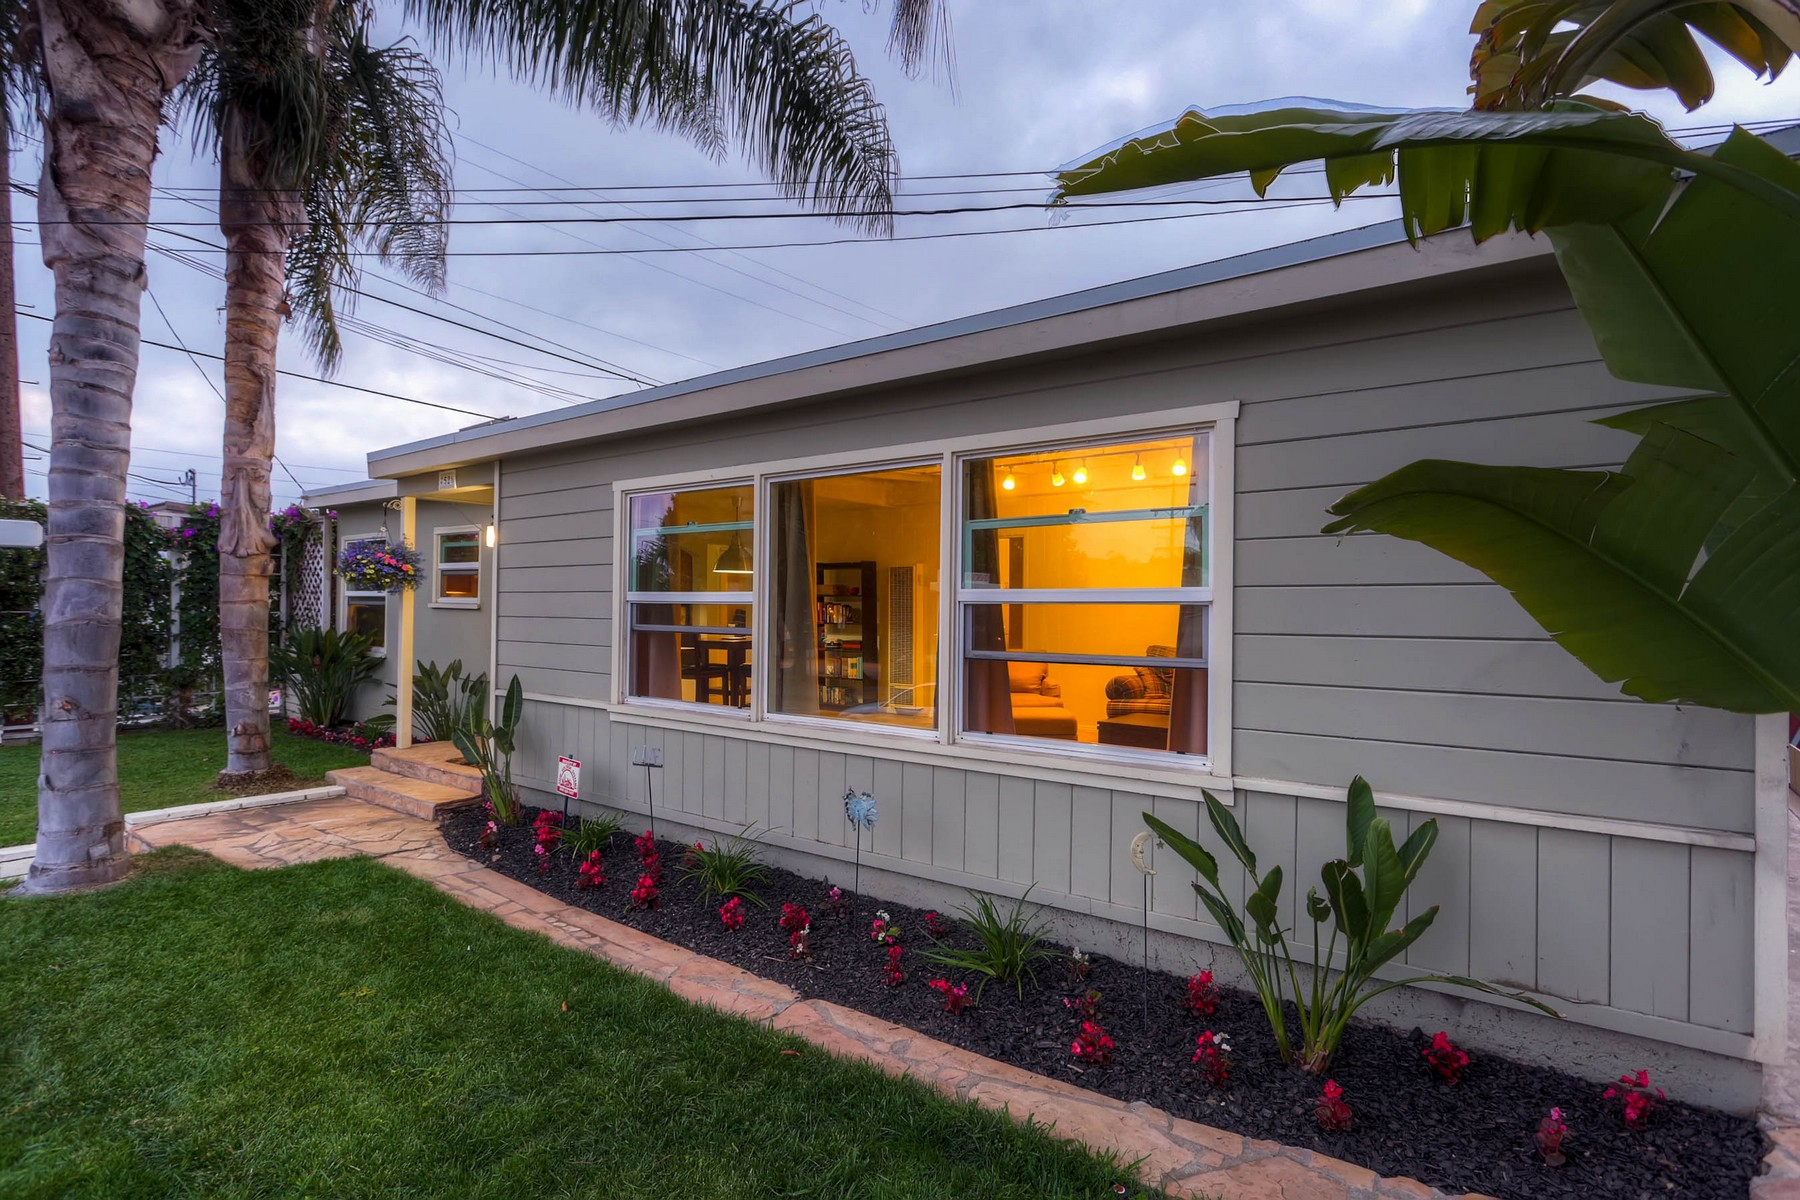 Single Family Home for Sale at 4526 Morrell Street San Diego, California 92109 United States